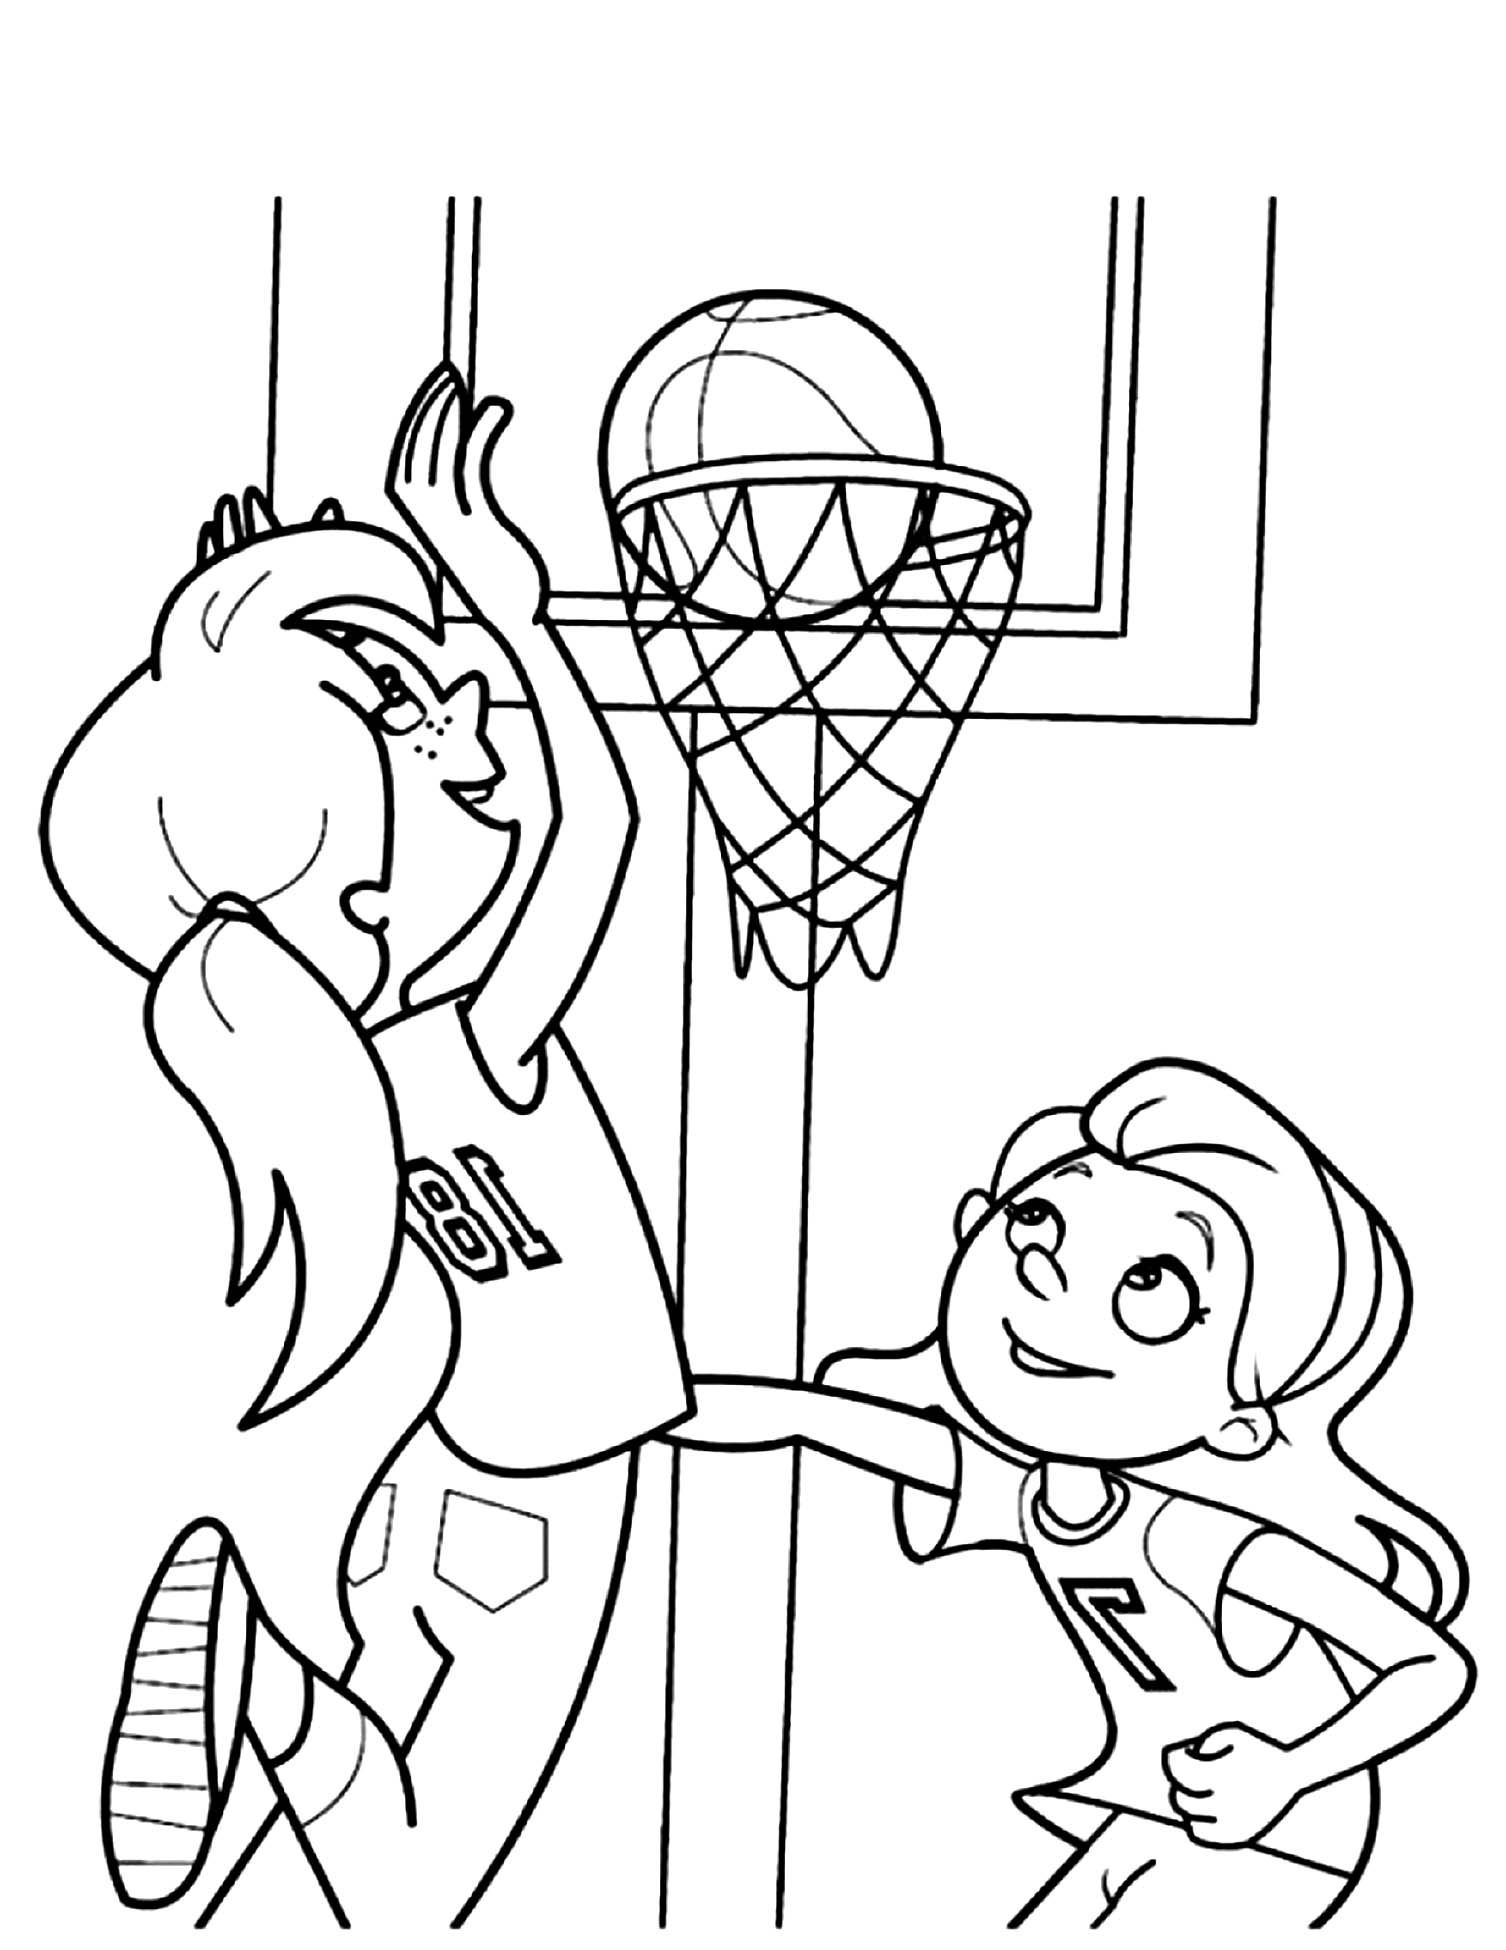 Free Basketball coloring page to download